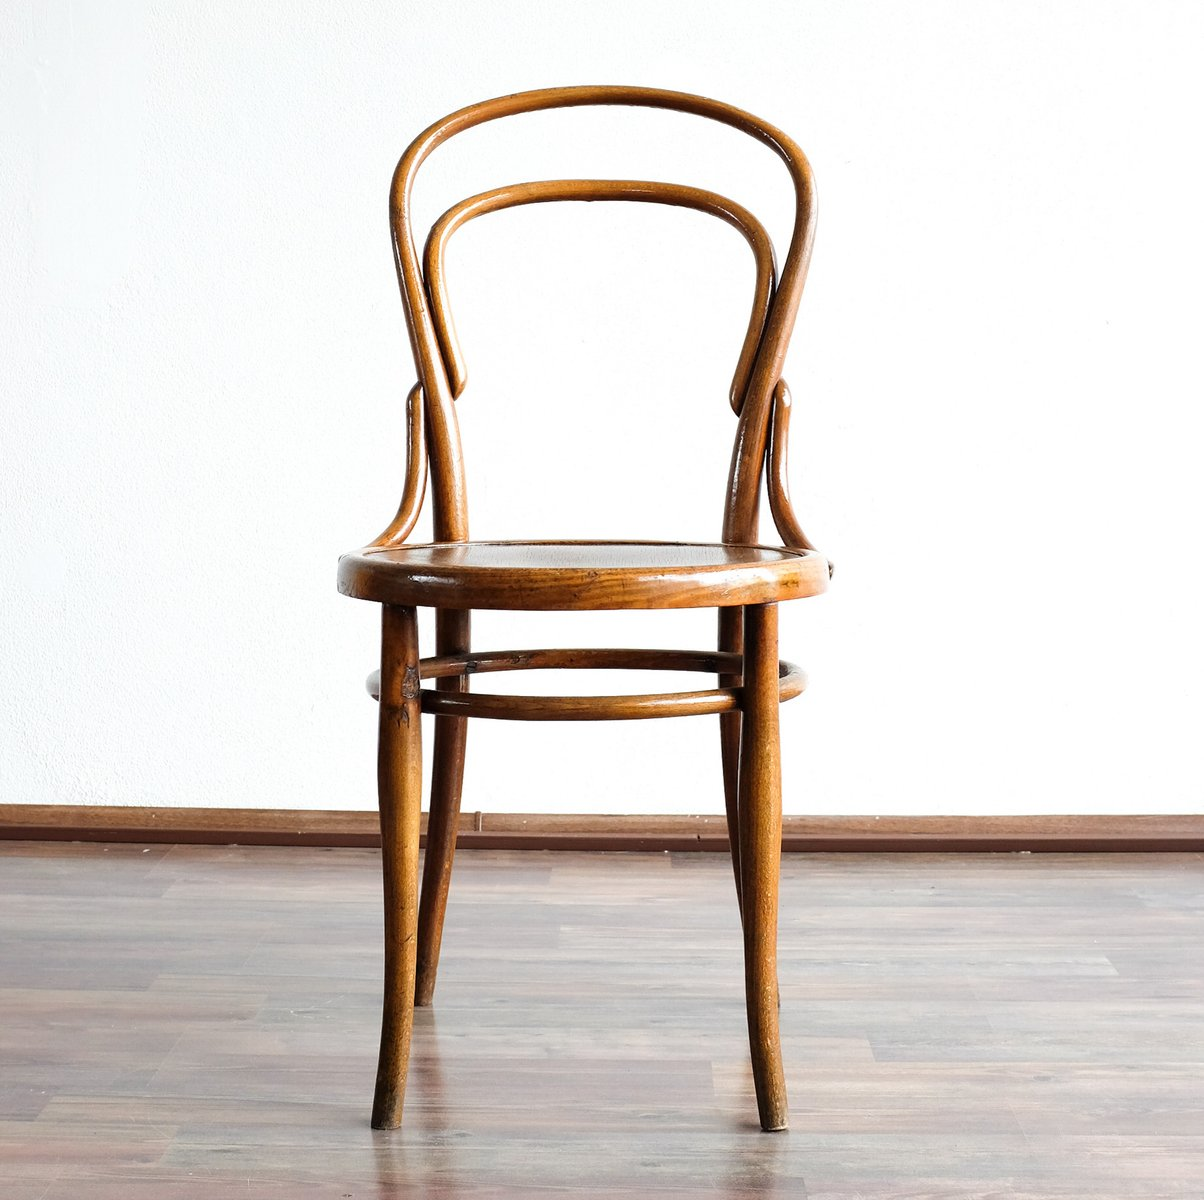 No 14 chair from thonet 1890s for sale at pamono - Sedia thonet originale ...